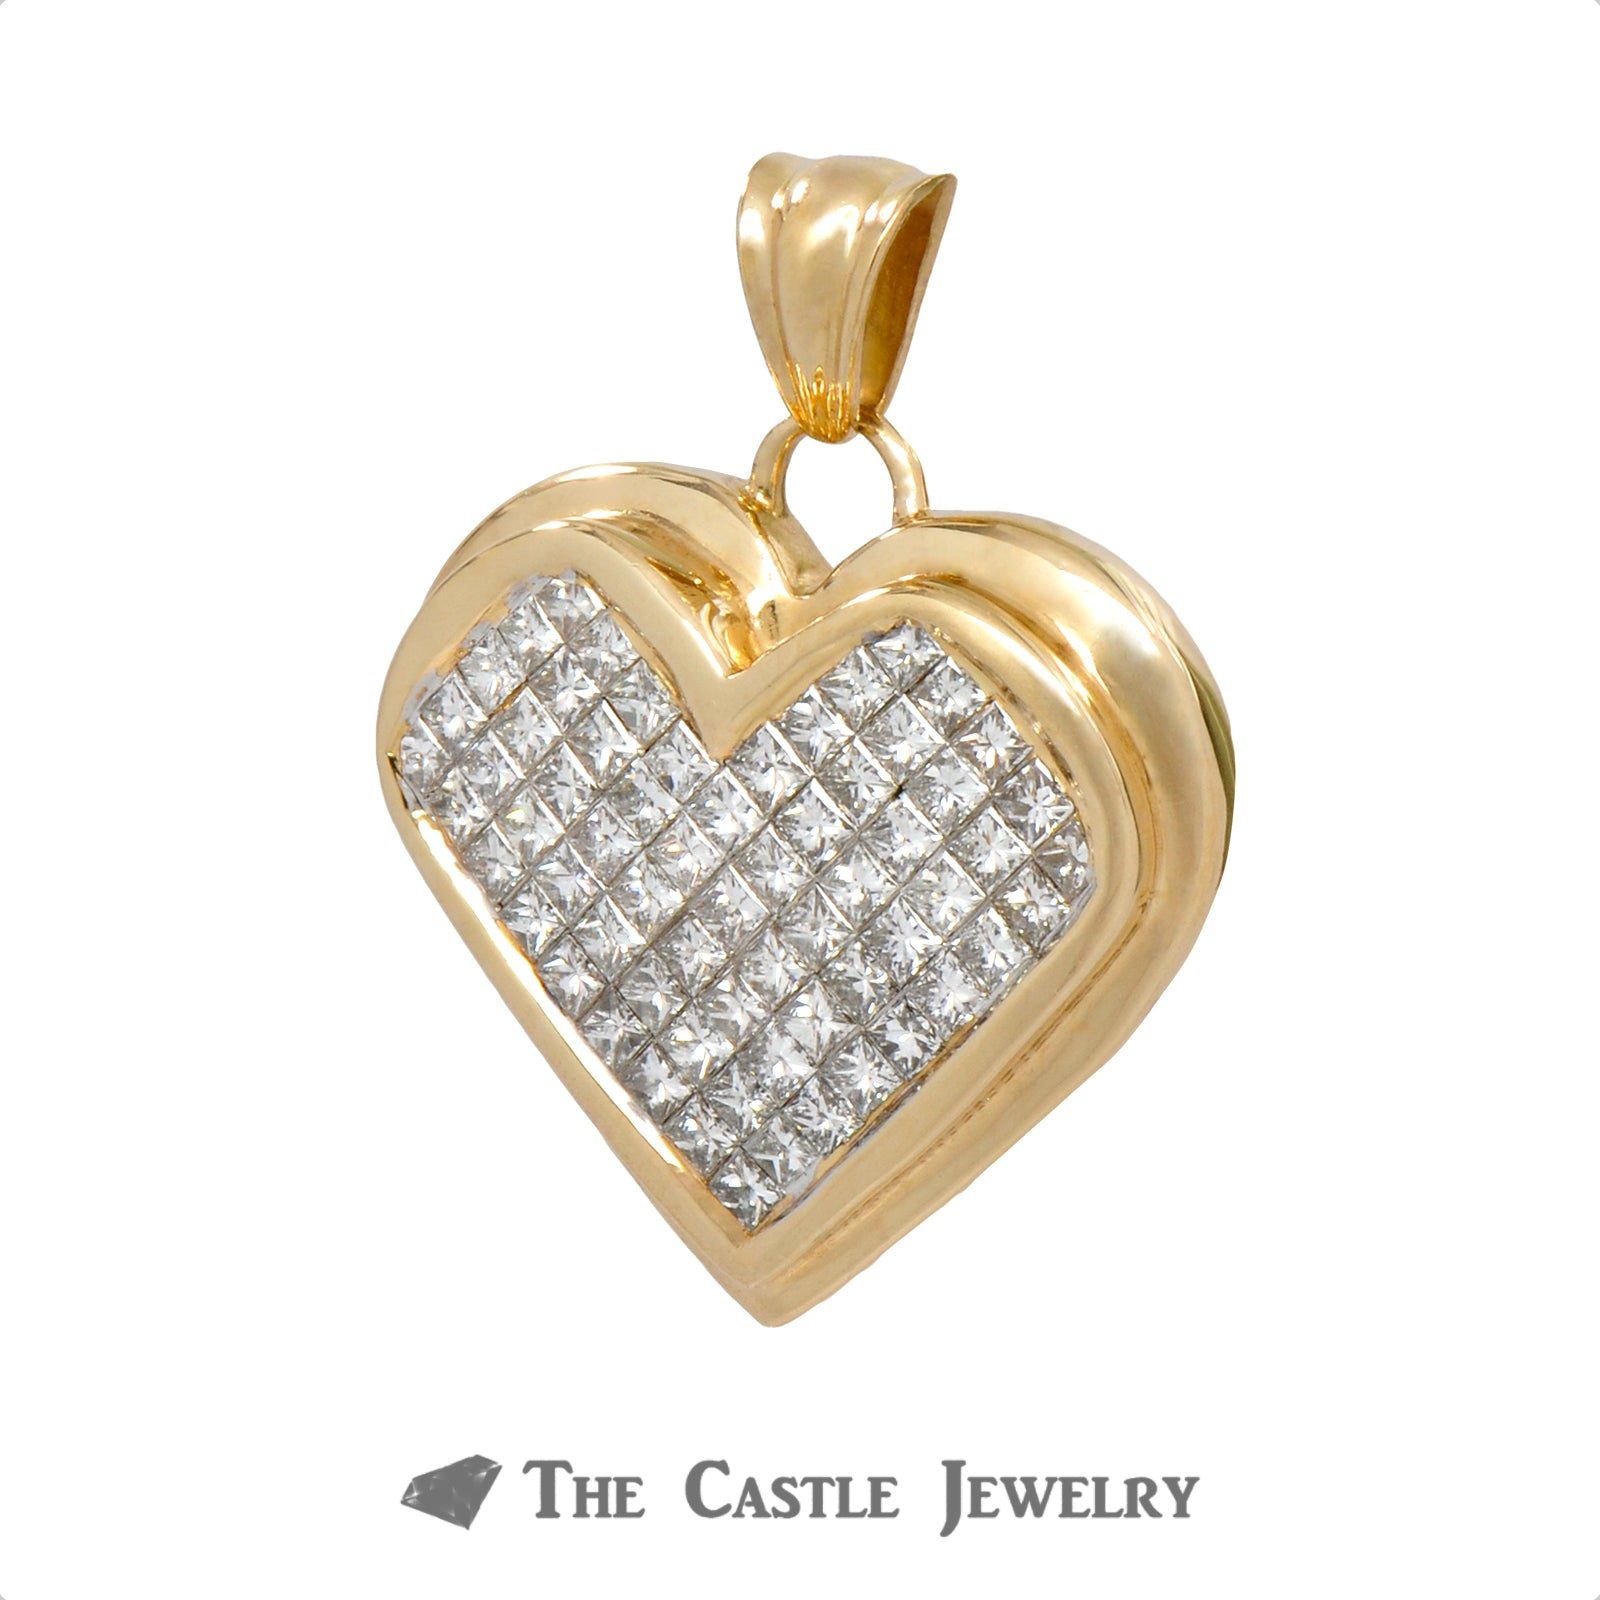 2cttw Heart Shaped Invisible Set Princess Cut Diamond Pendant Crafted in Yellow Gold-1